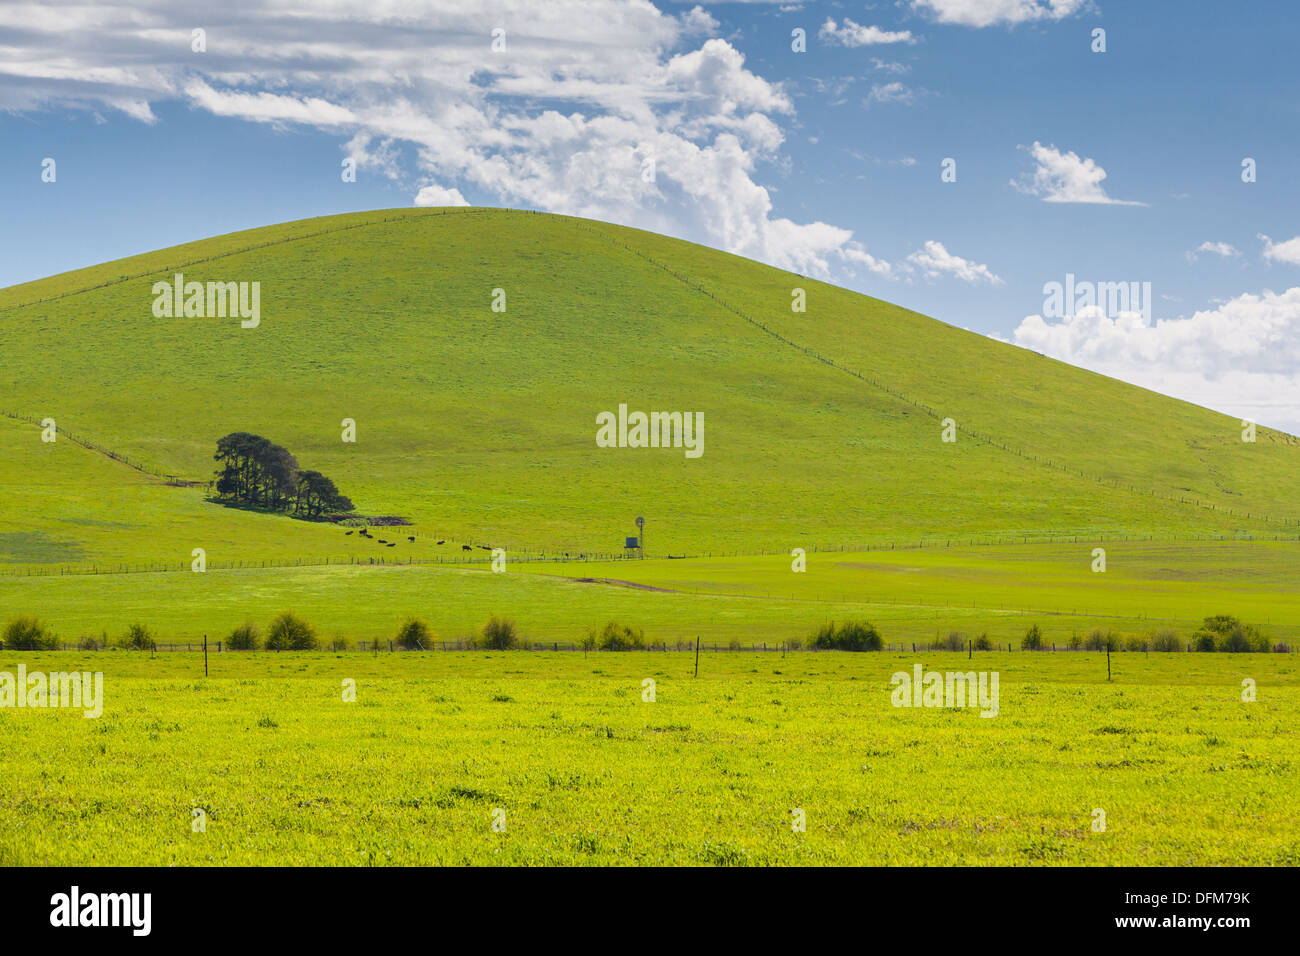 A hill near Creswick shines on a spring day near Creswick in the Victorian goldfields, Australia - Stock Image